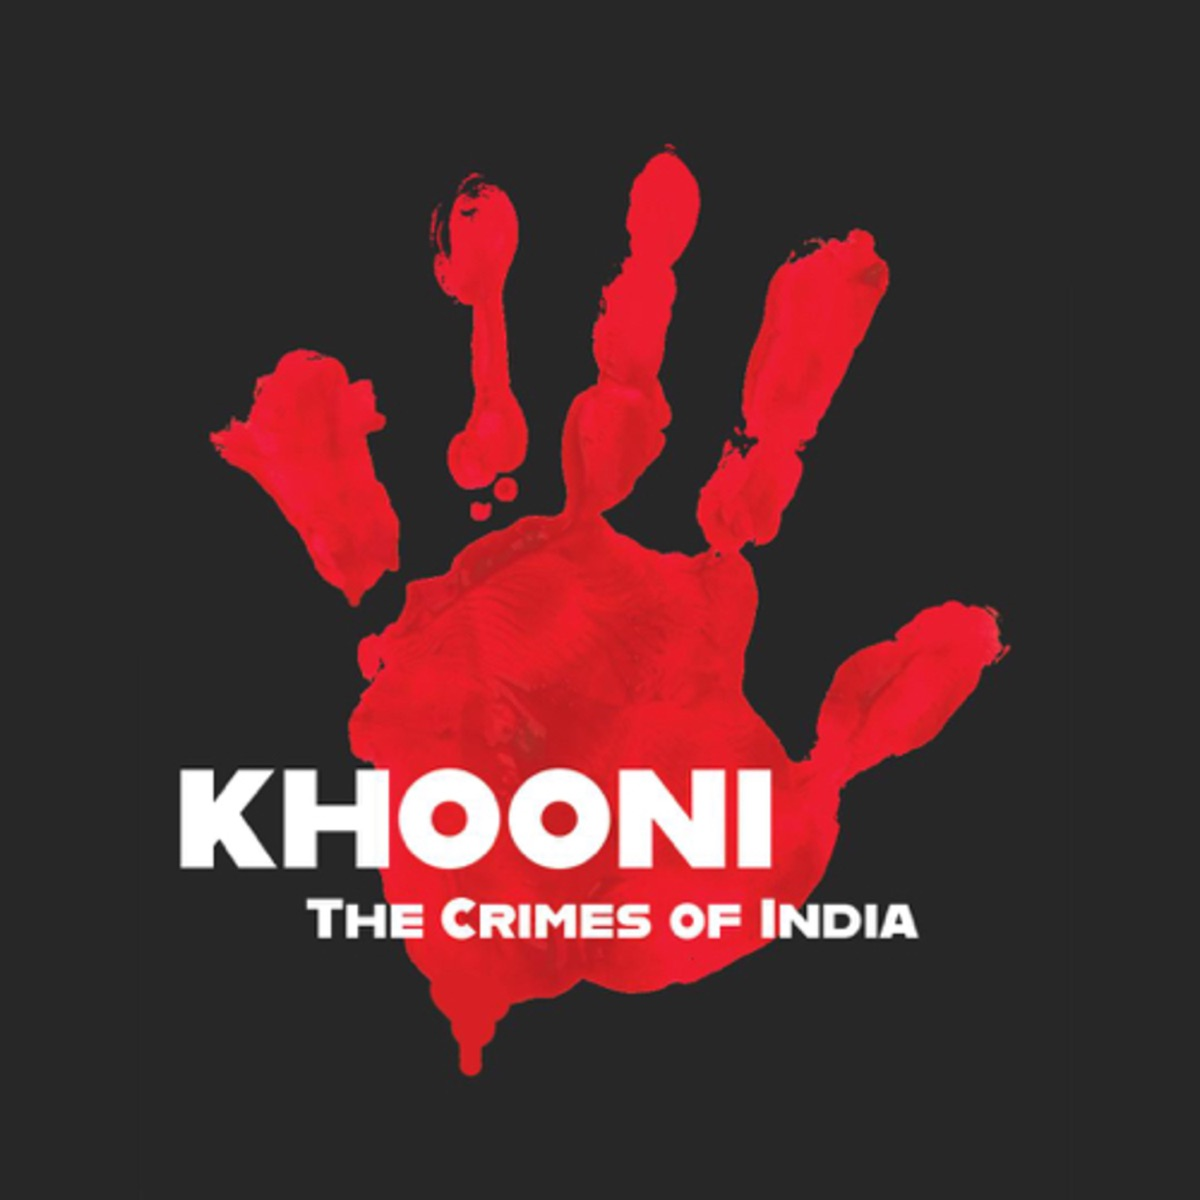 Khooni : The Crimes of India